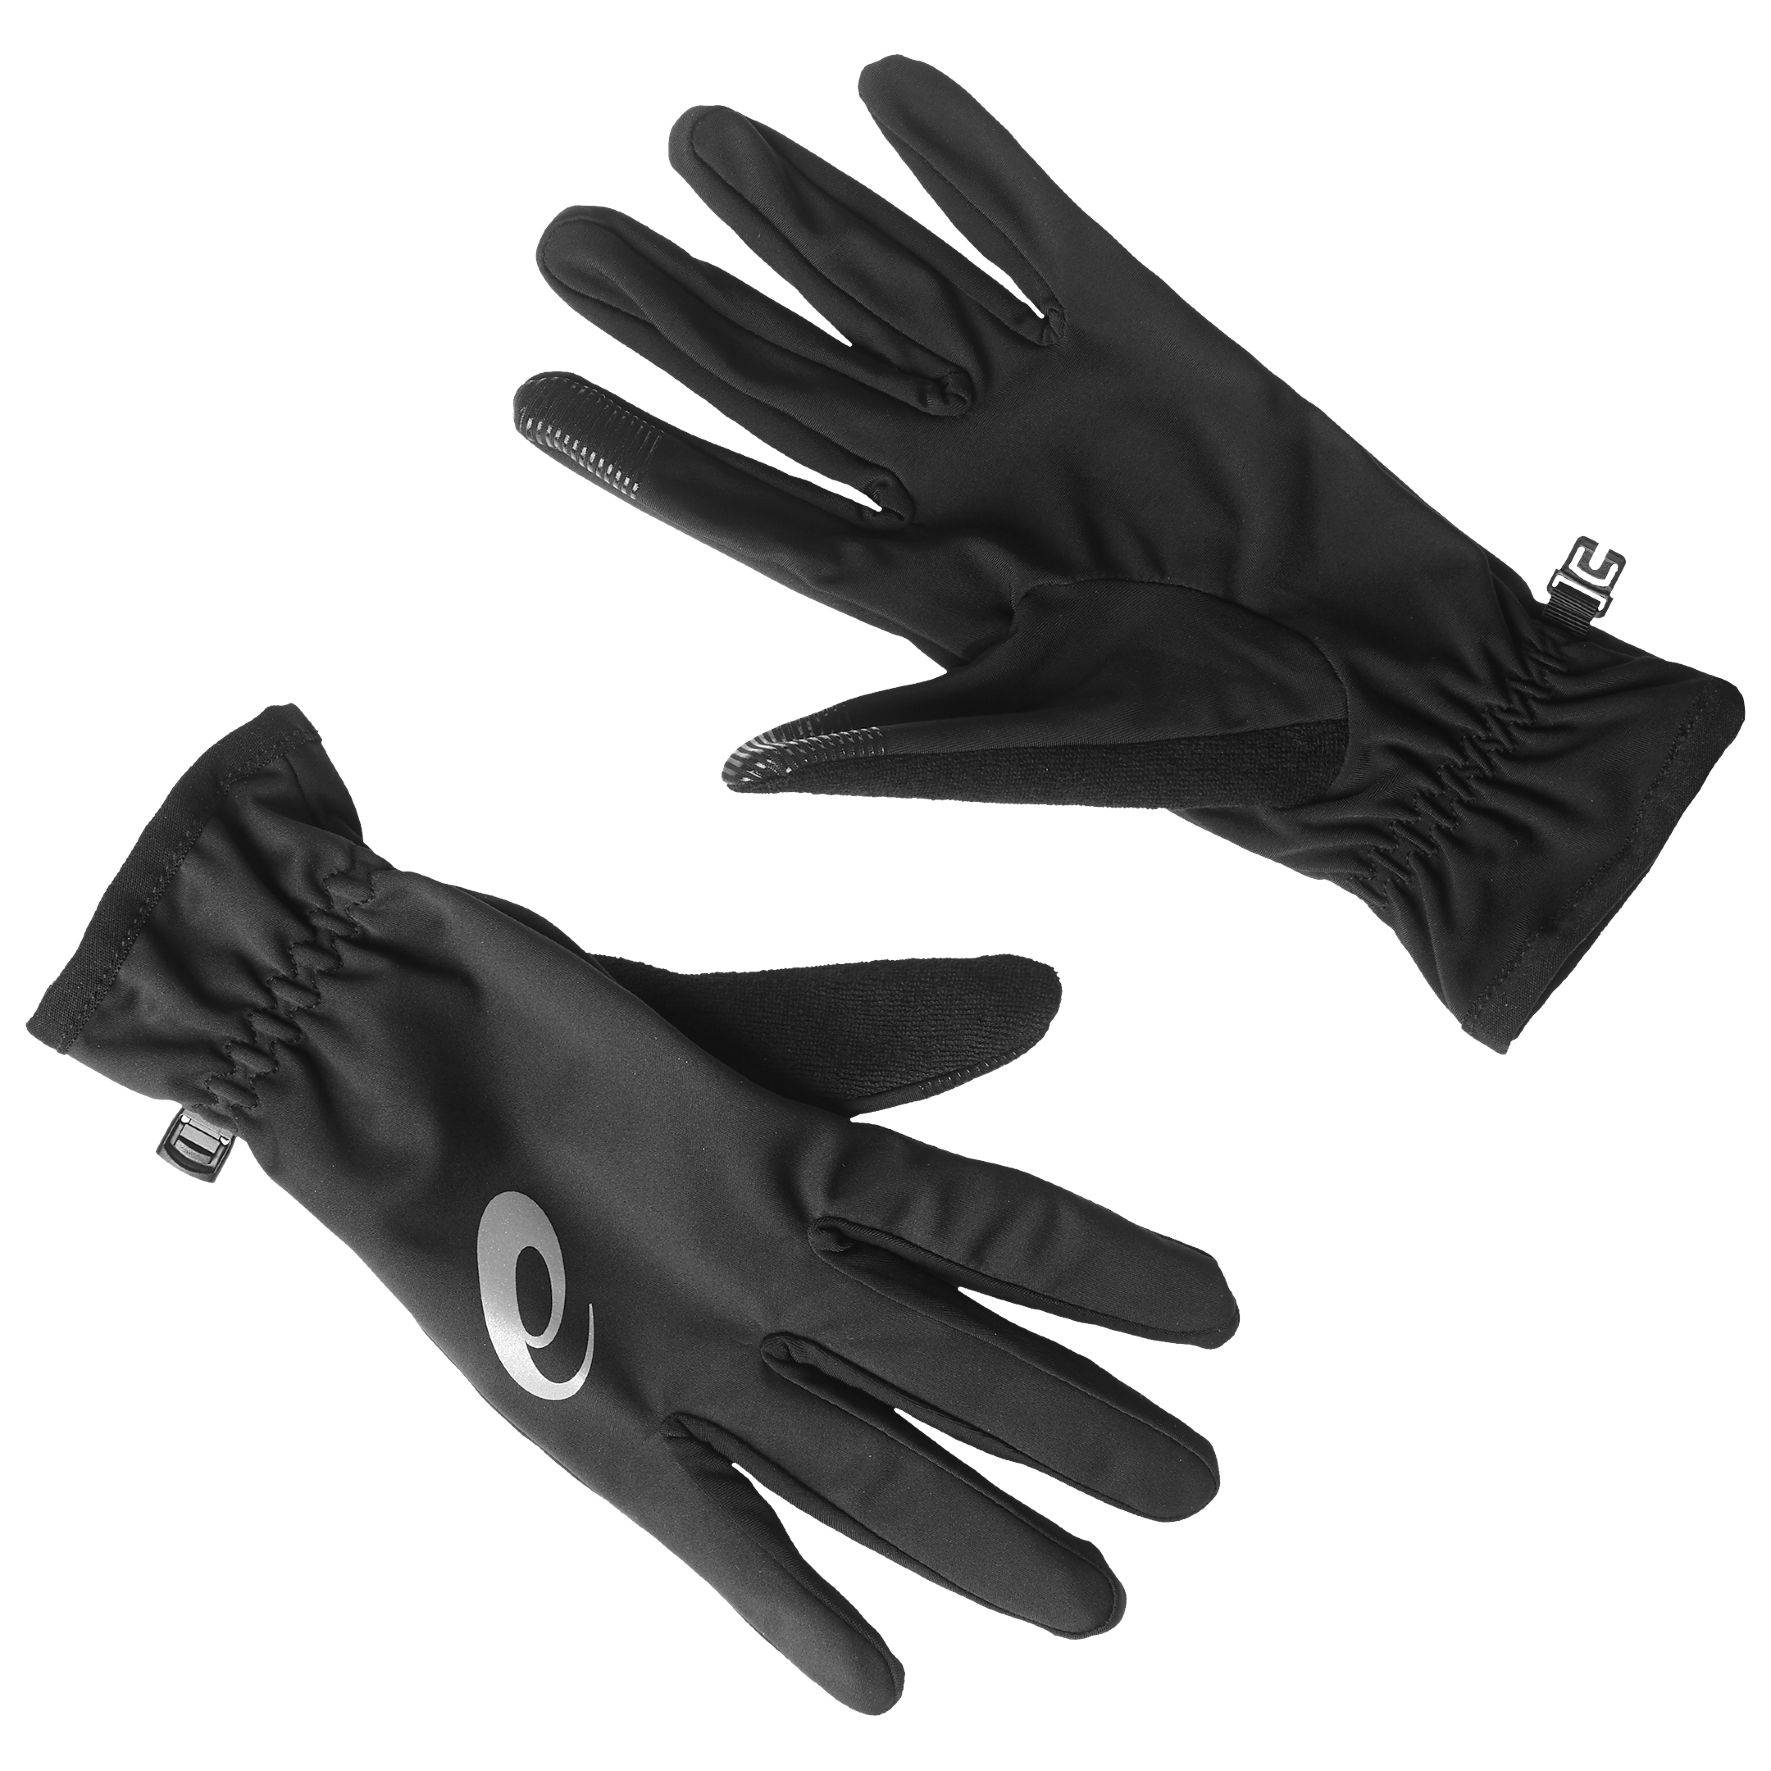 �������� ������� Asics Winter Performance Gloves ������ - - 134926